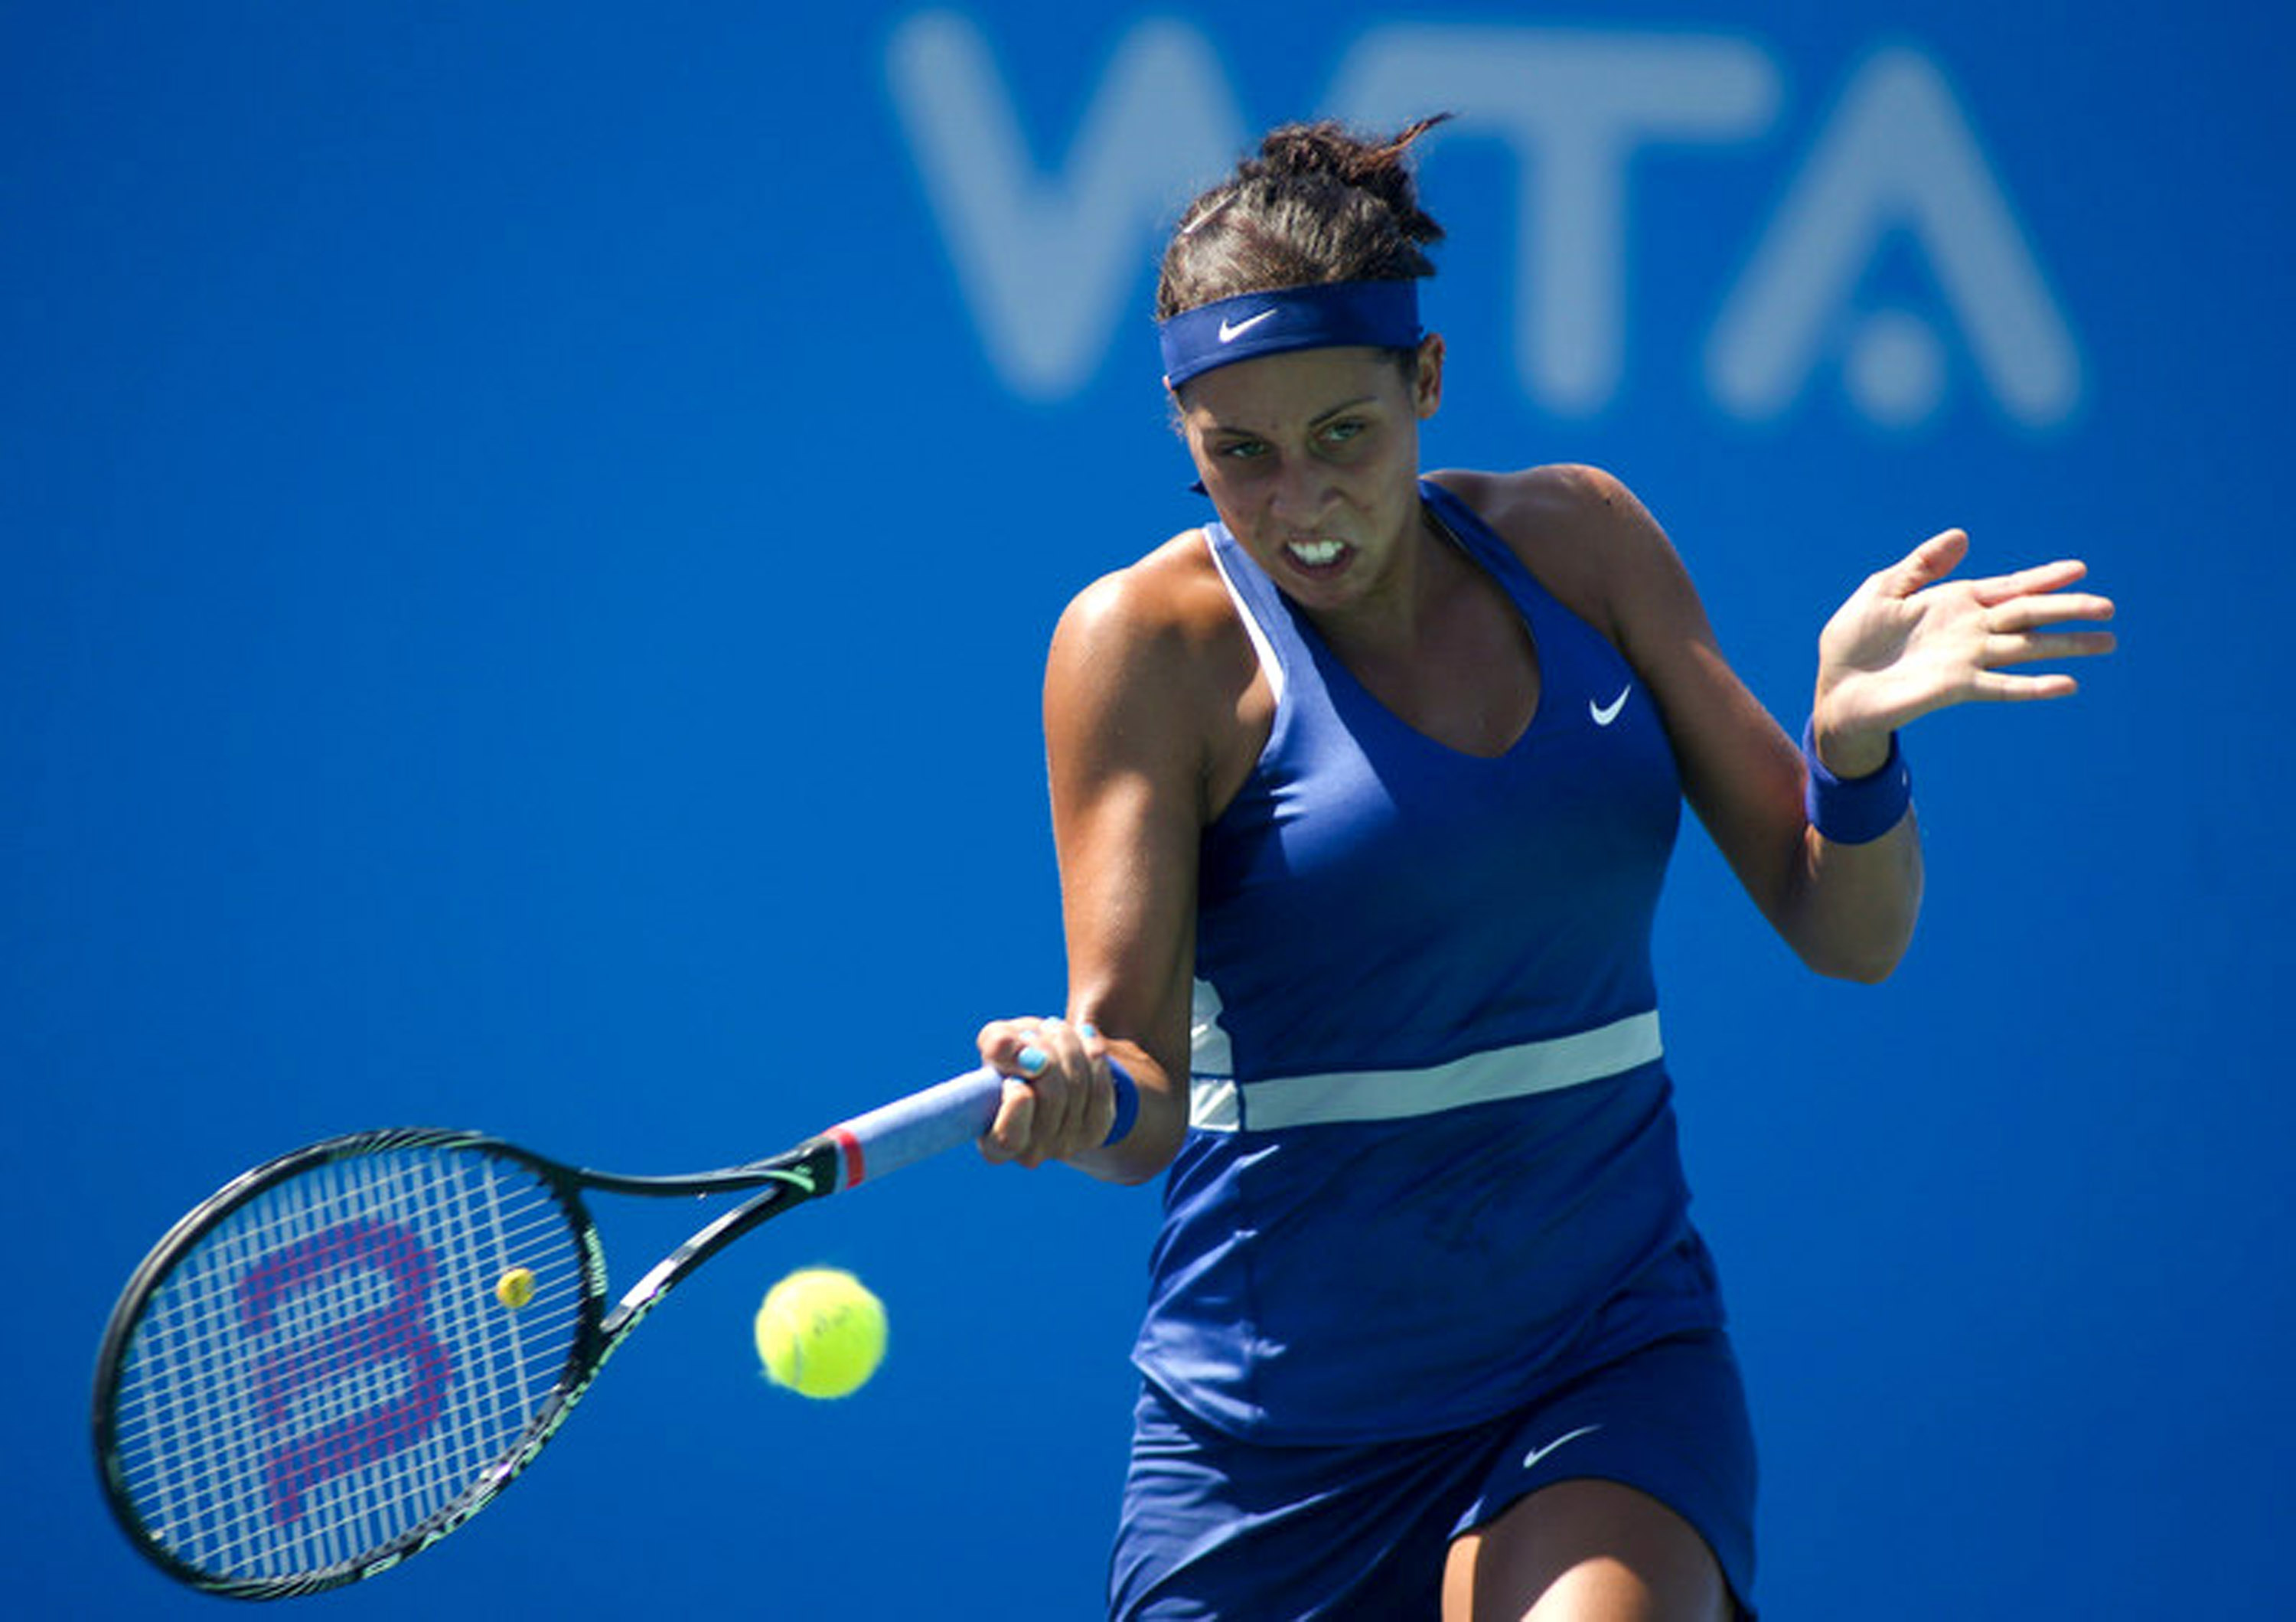 Madison Keys competes against Dominika Cibulkova.